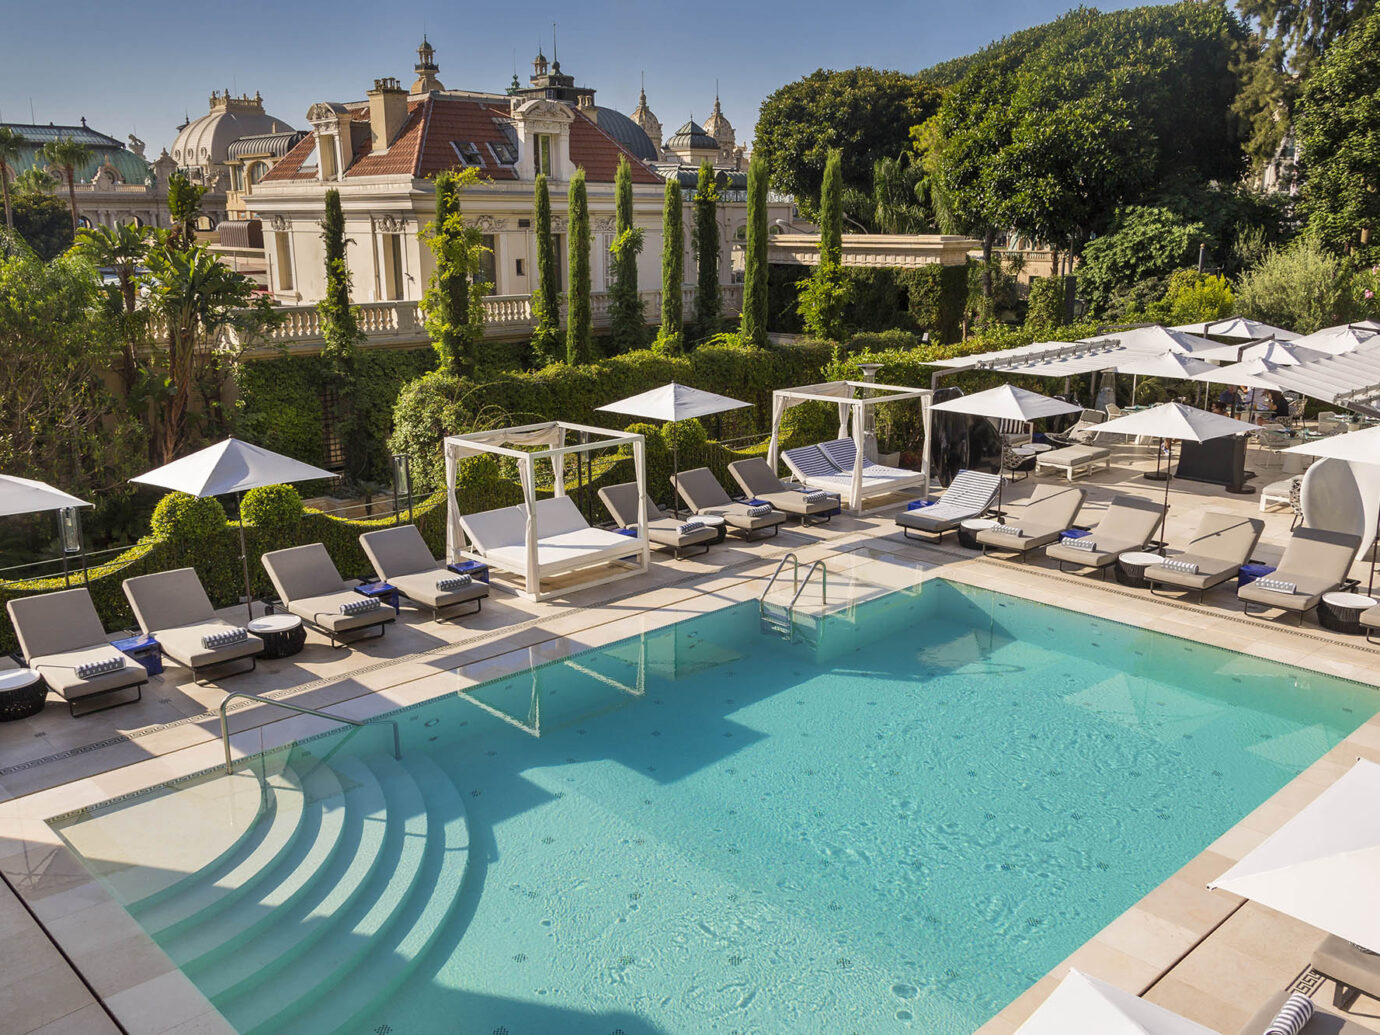 Pool at Exterior of Hotel Metropole in Monoco